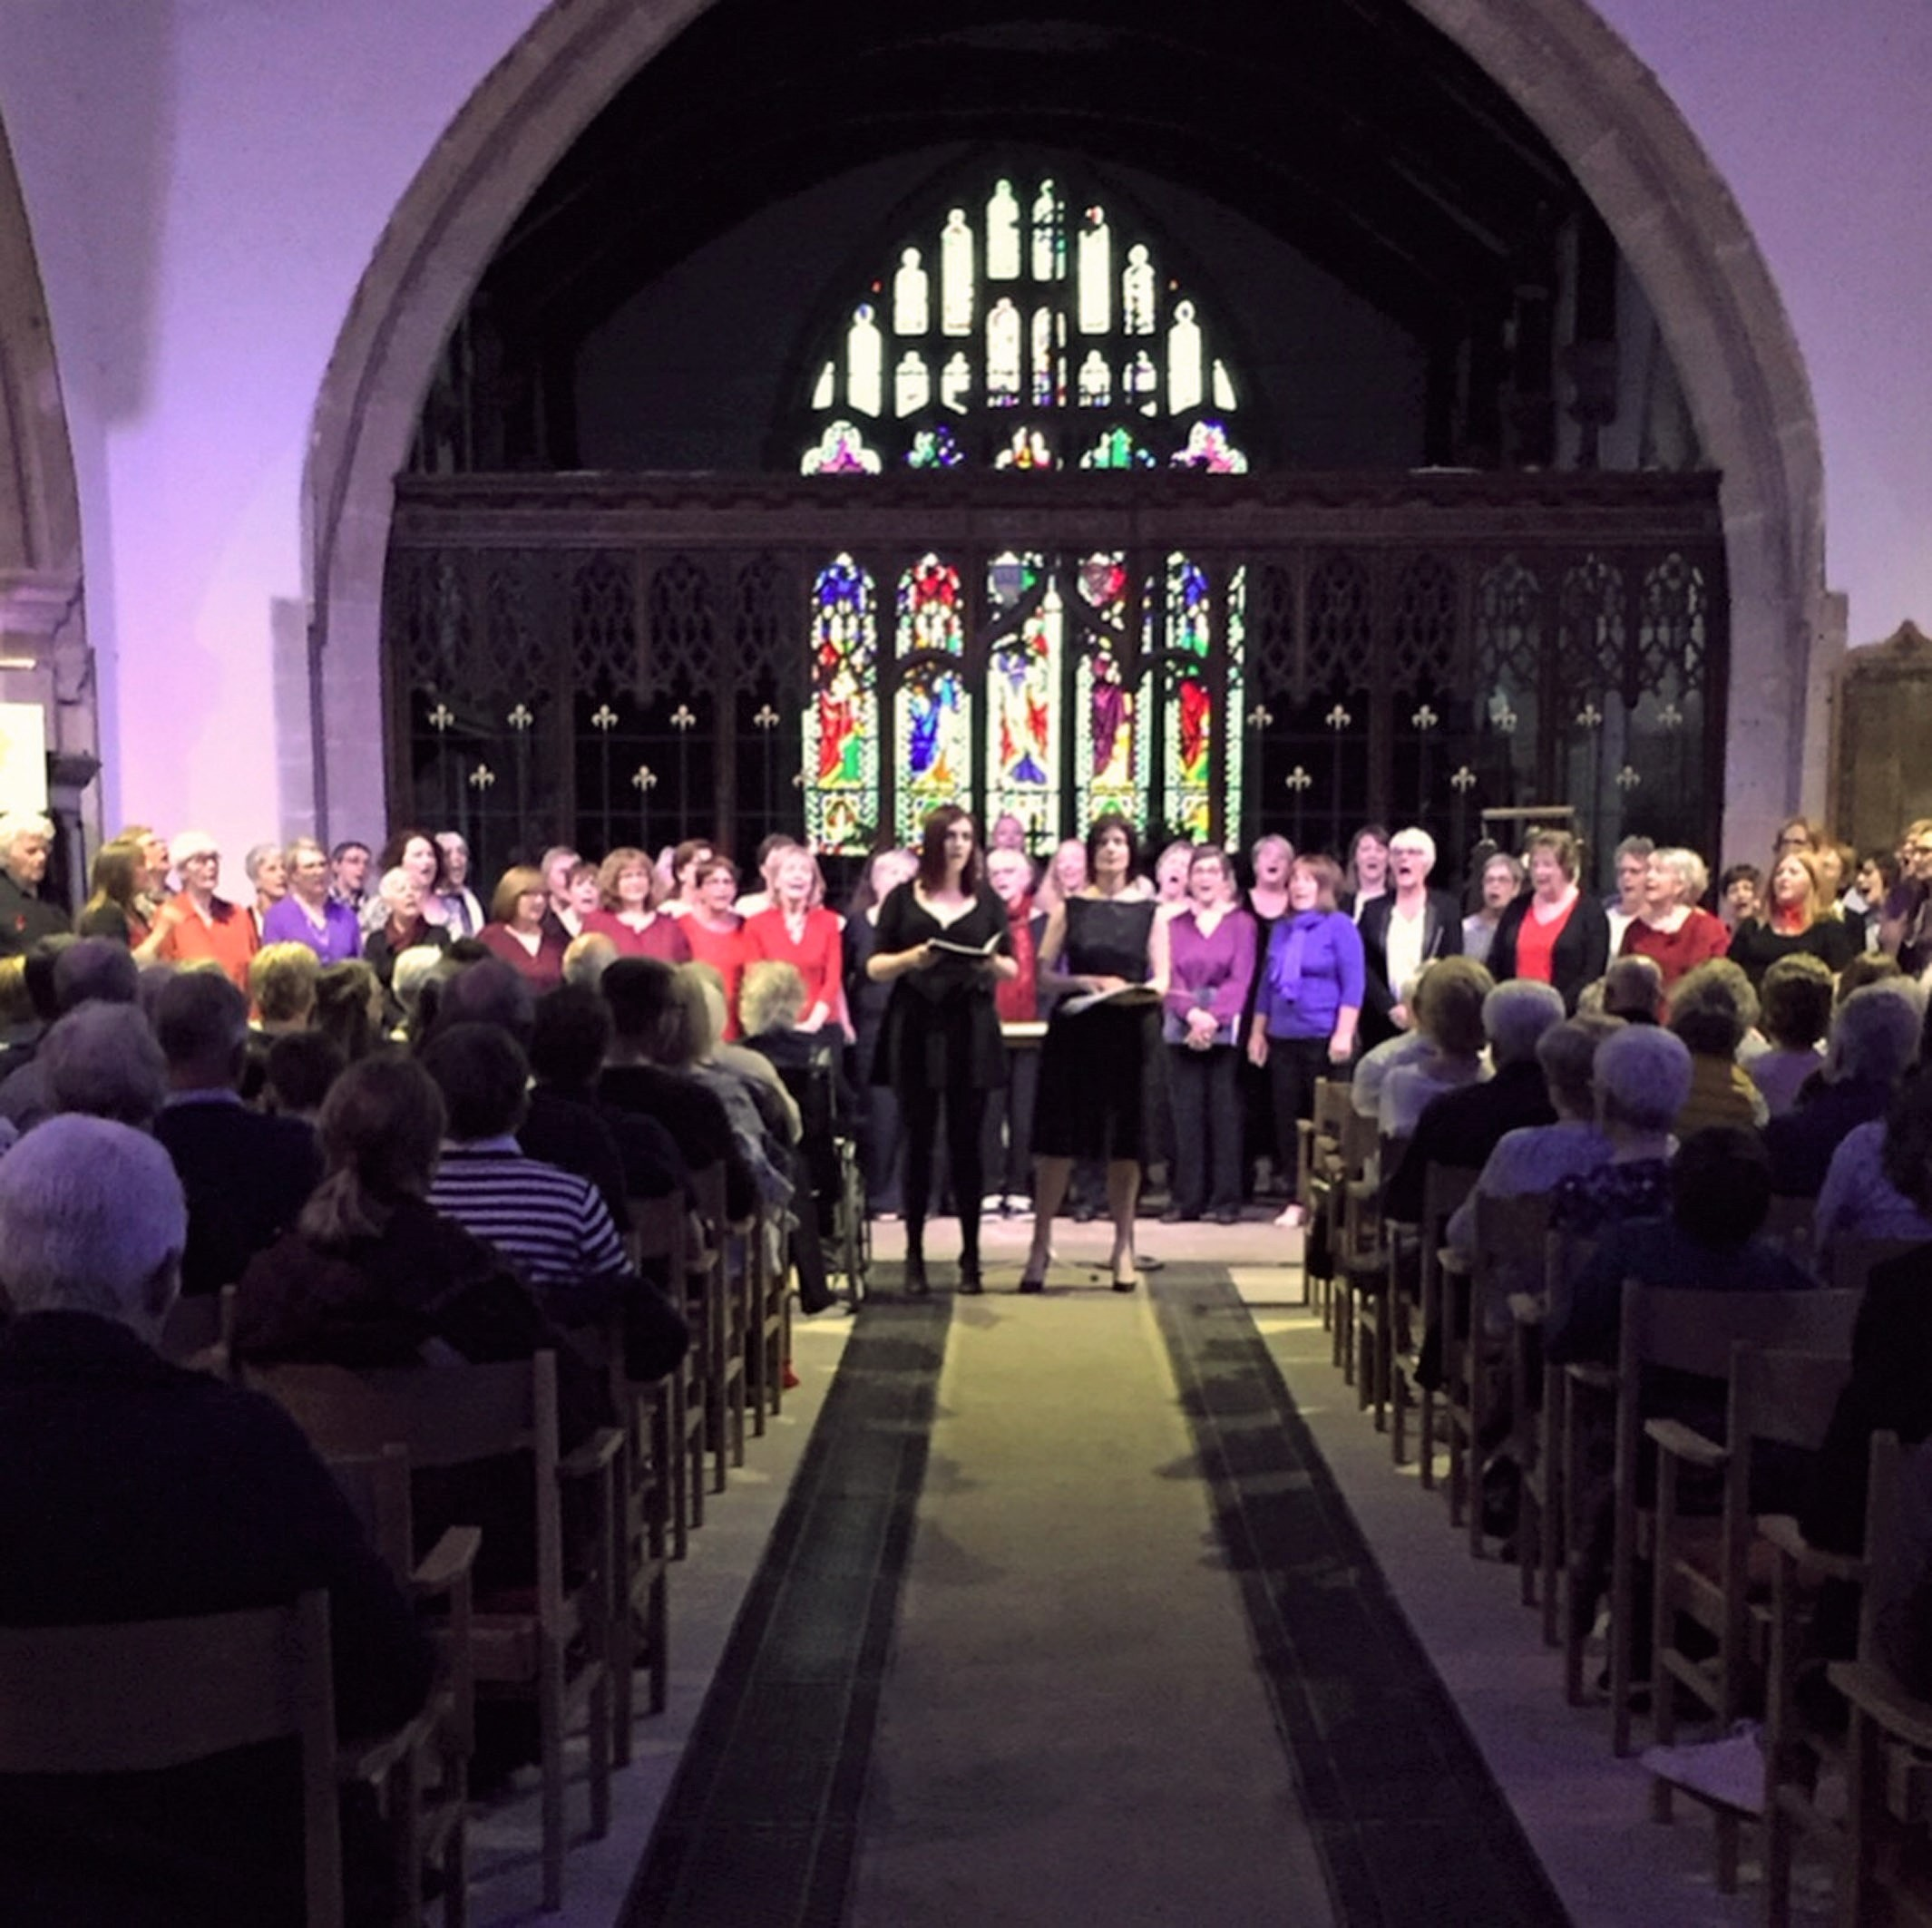 Performing together at Otley Parish Church to raise money for Singing for the Brain - Sally's Army and The Otley Singers